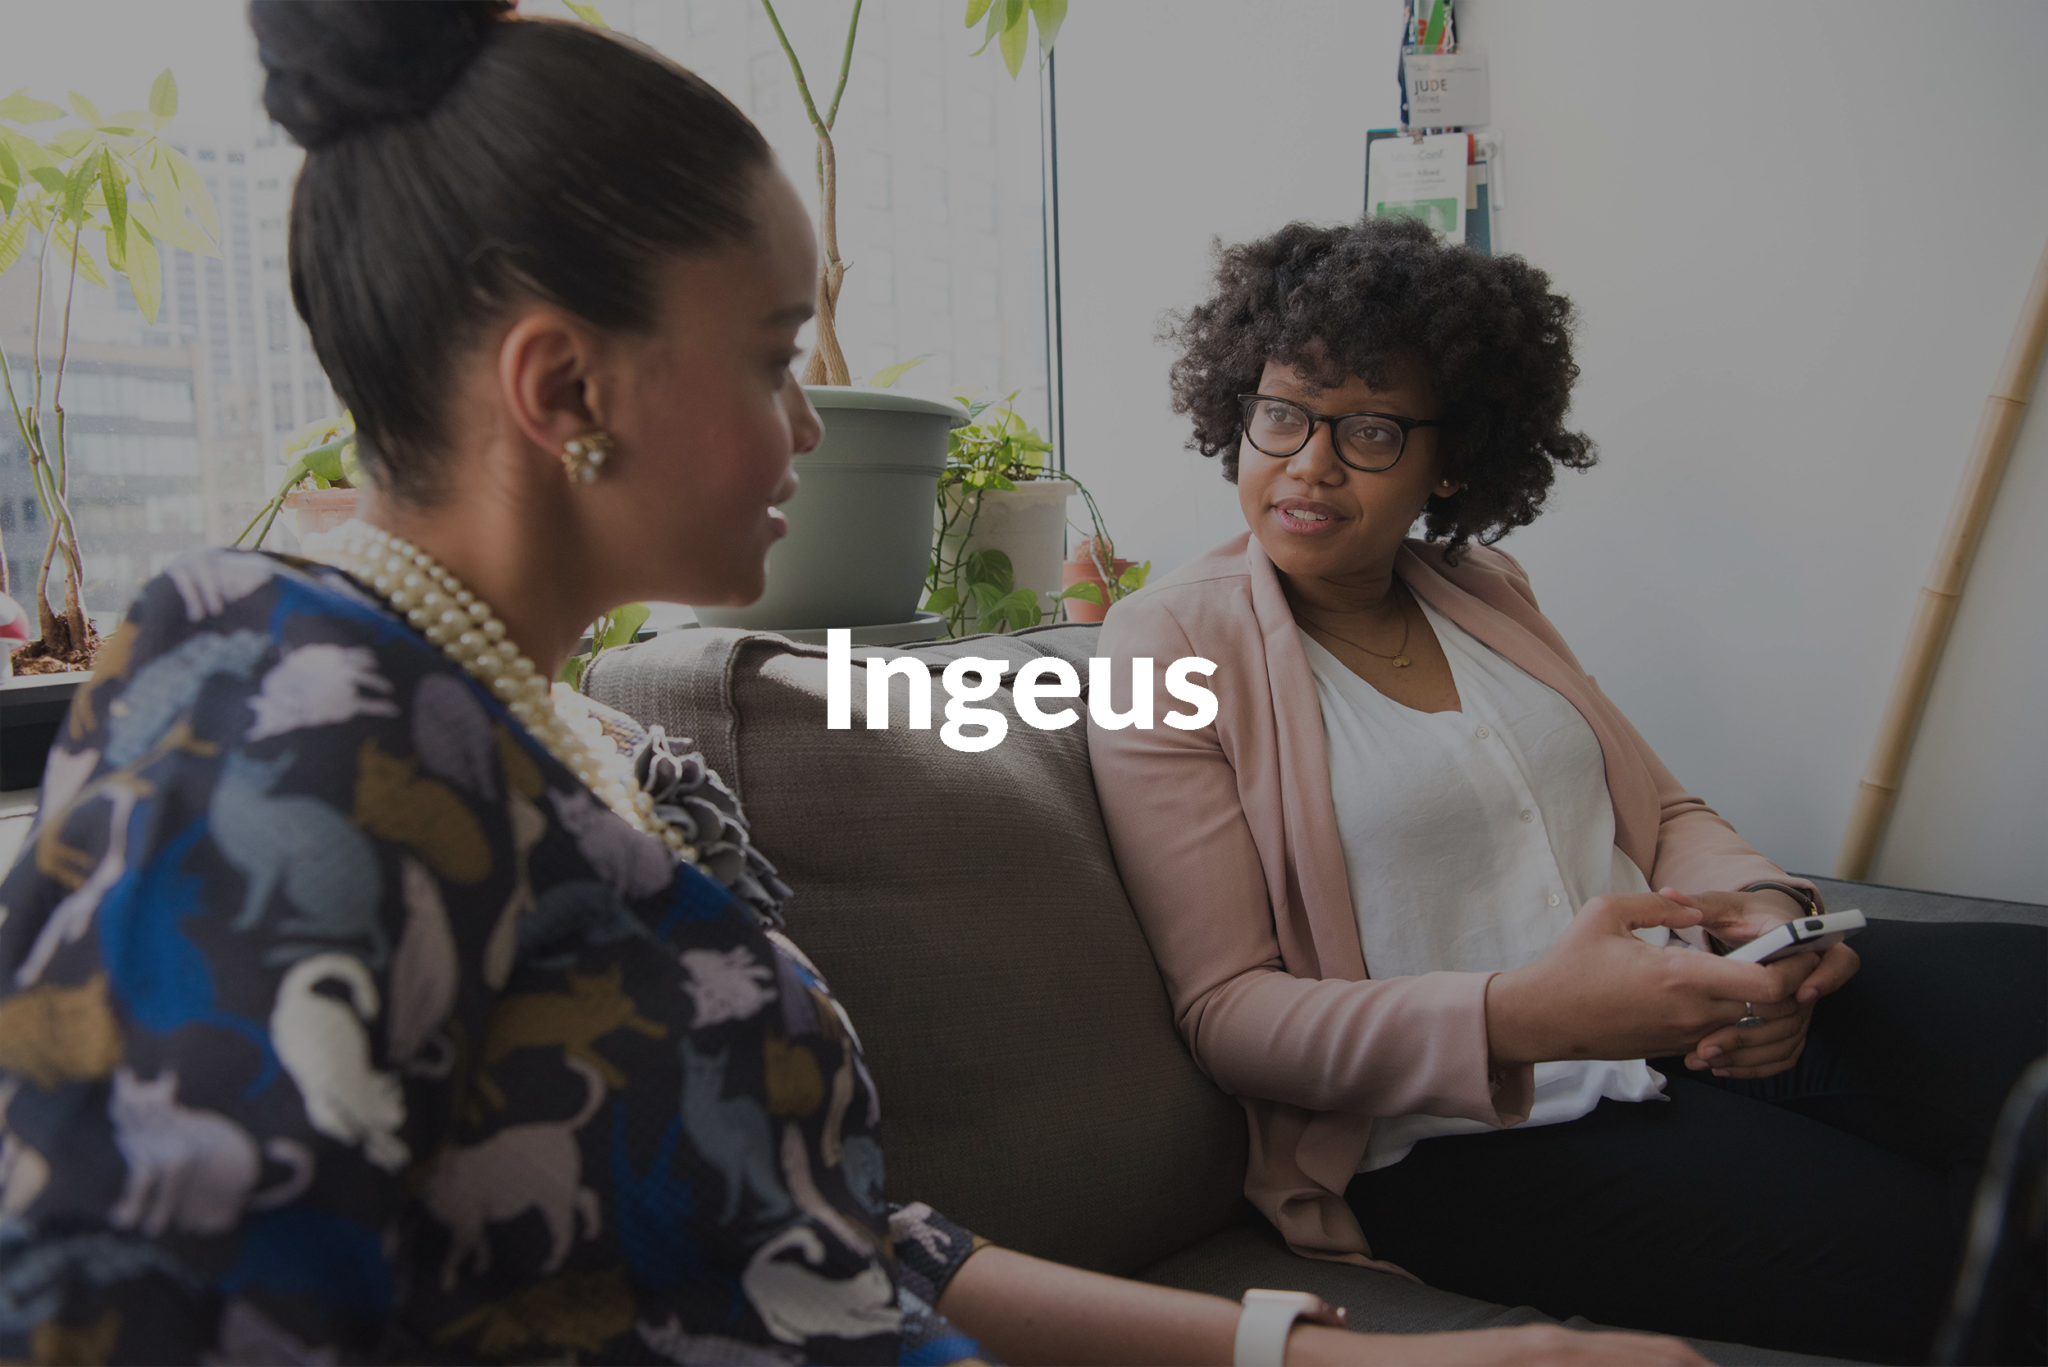 Image of two people talking with the text Ingeus over the top of the image